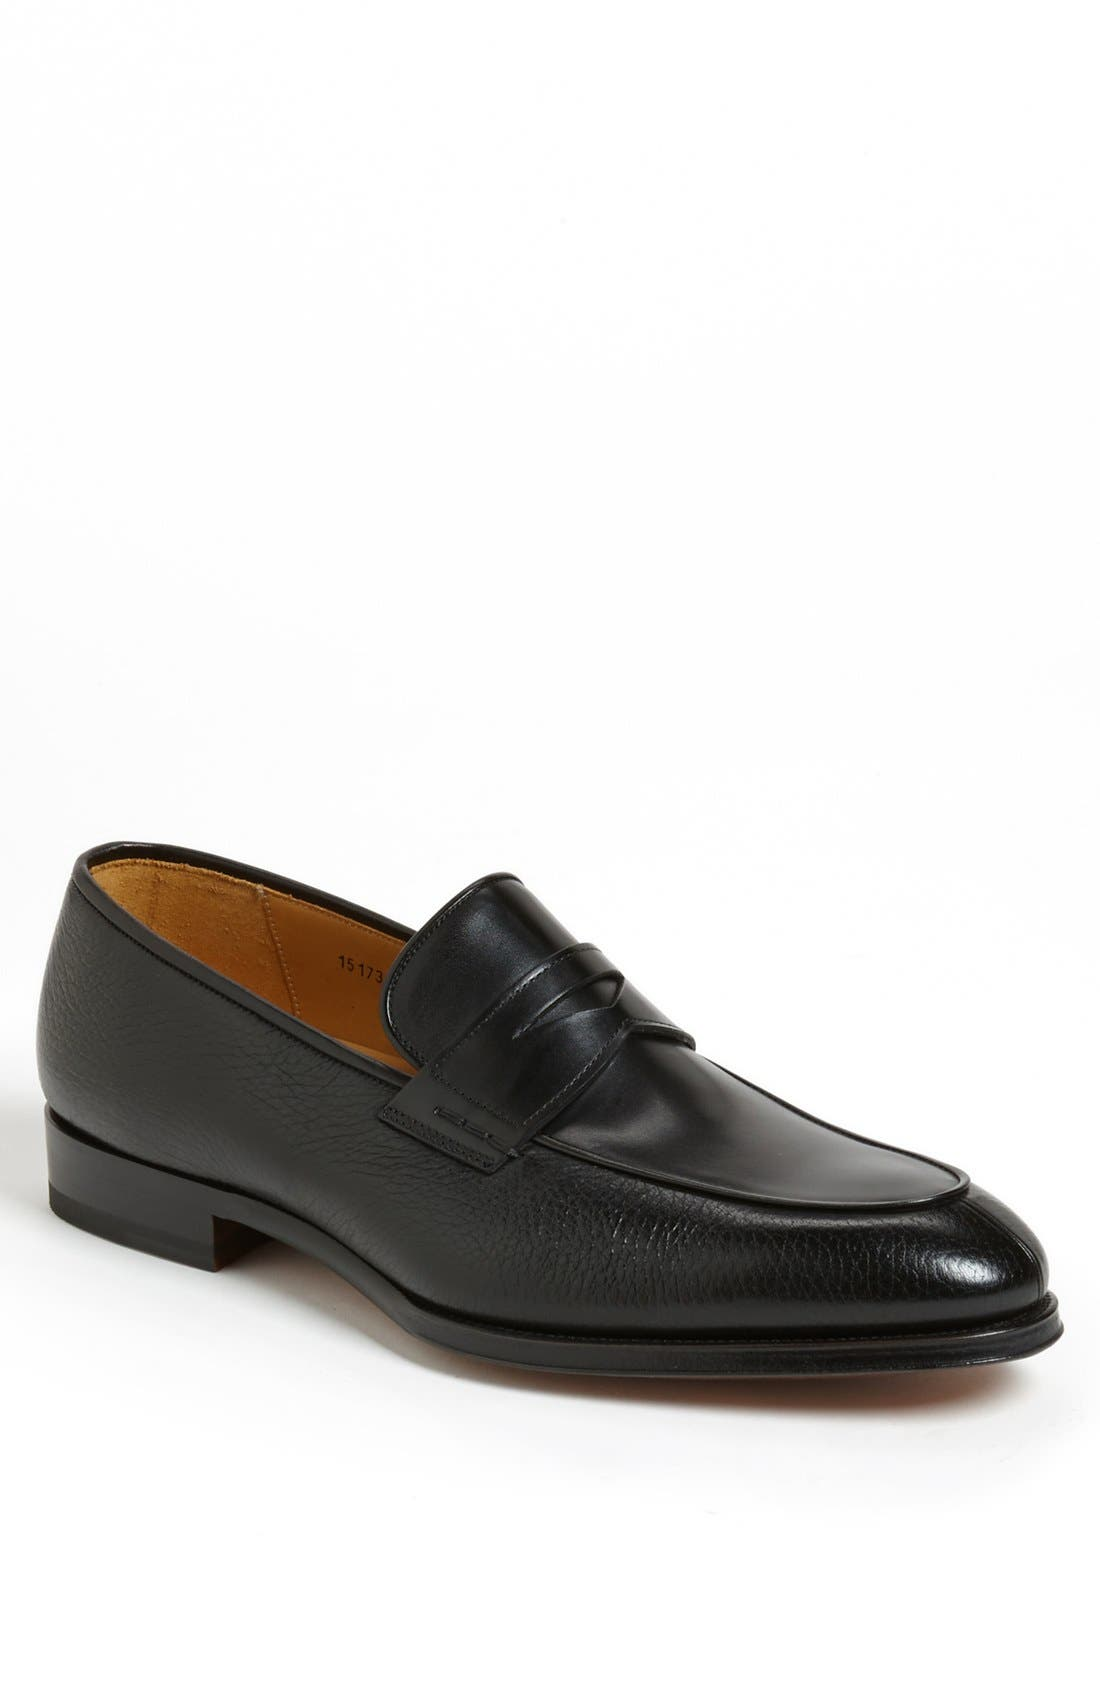 Alternate Image 1 Selected - Magnanni 'Emilio' Penny Loafer